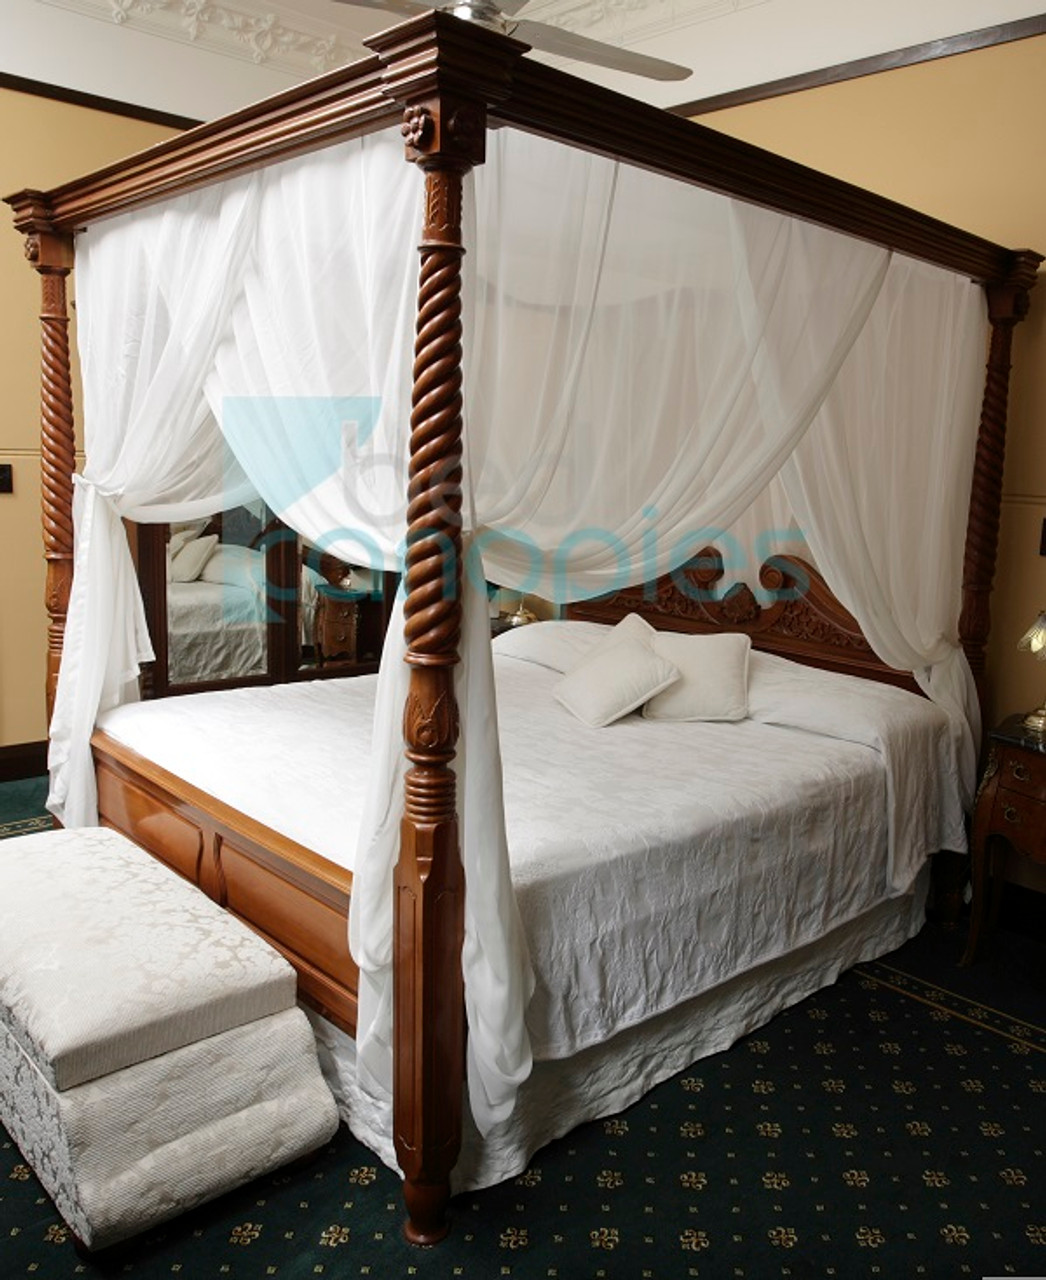 - Canopy Bed Curtain - Queen Canopy Curtains